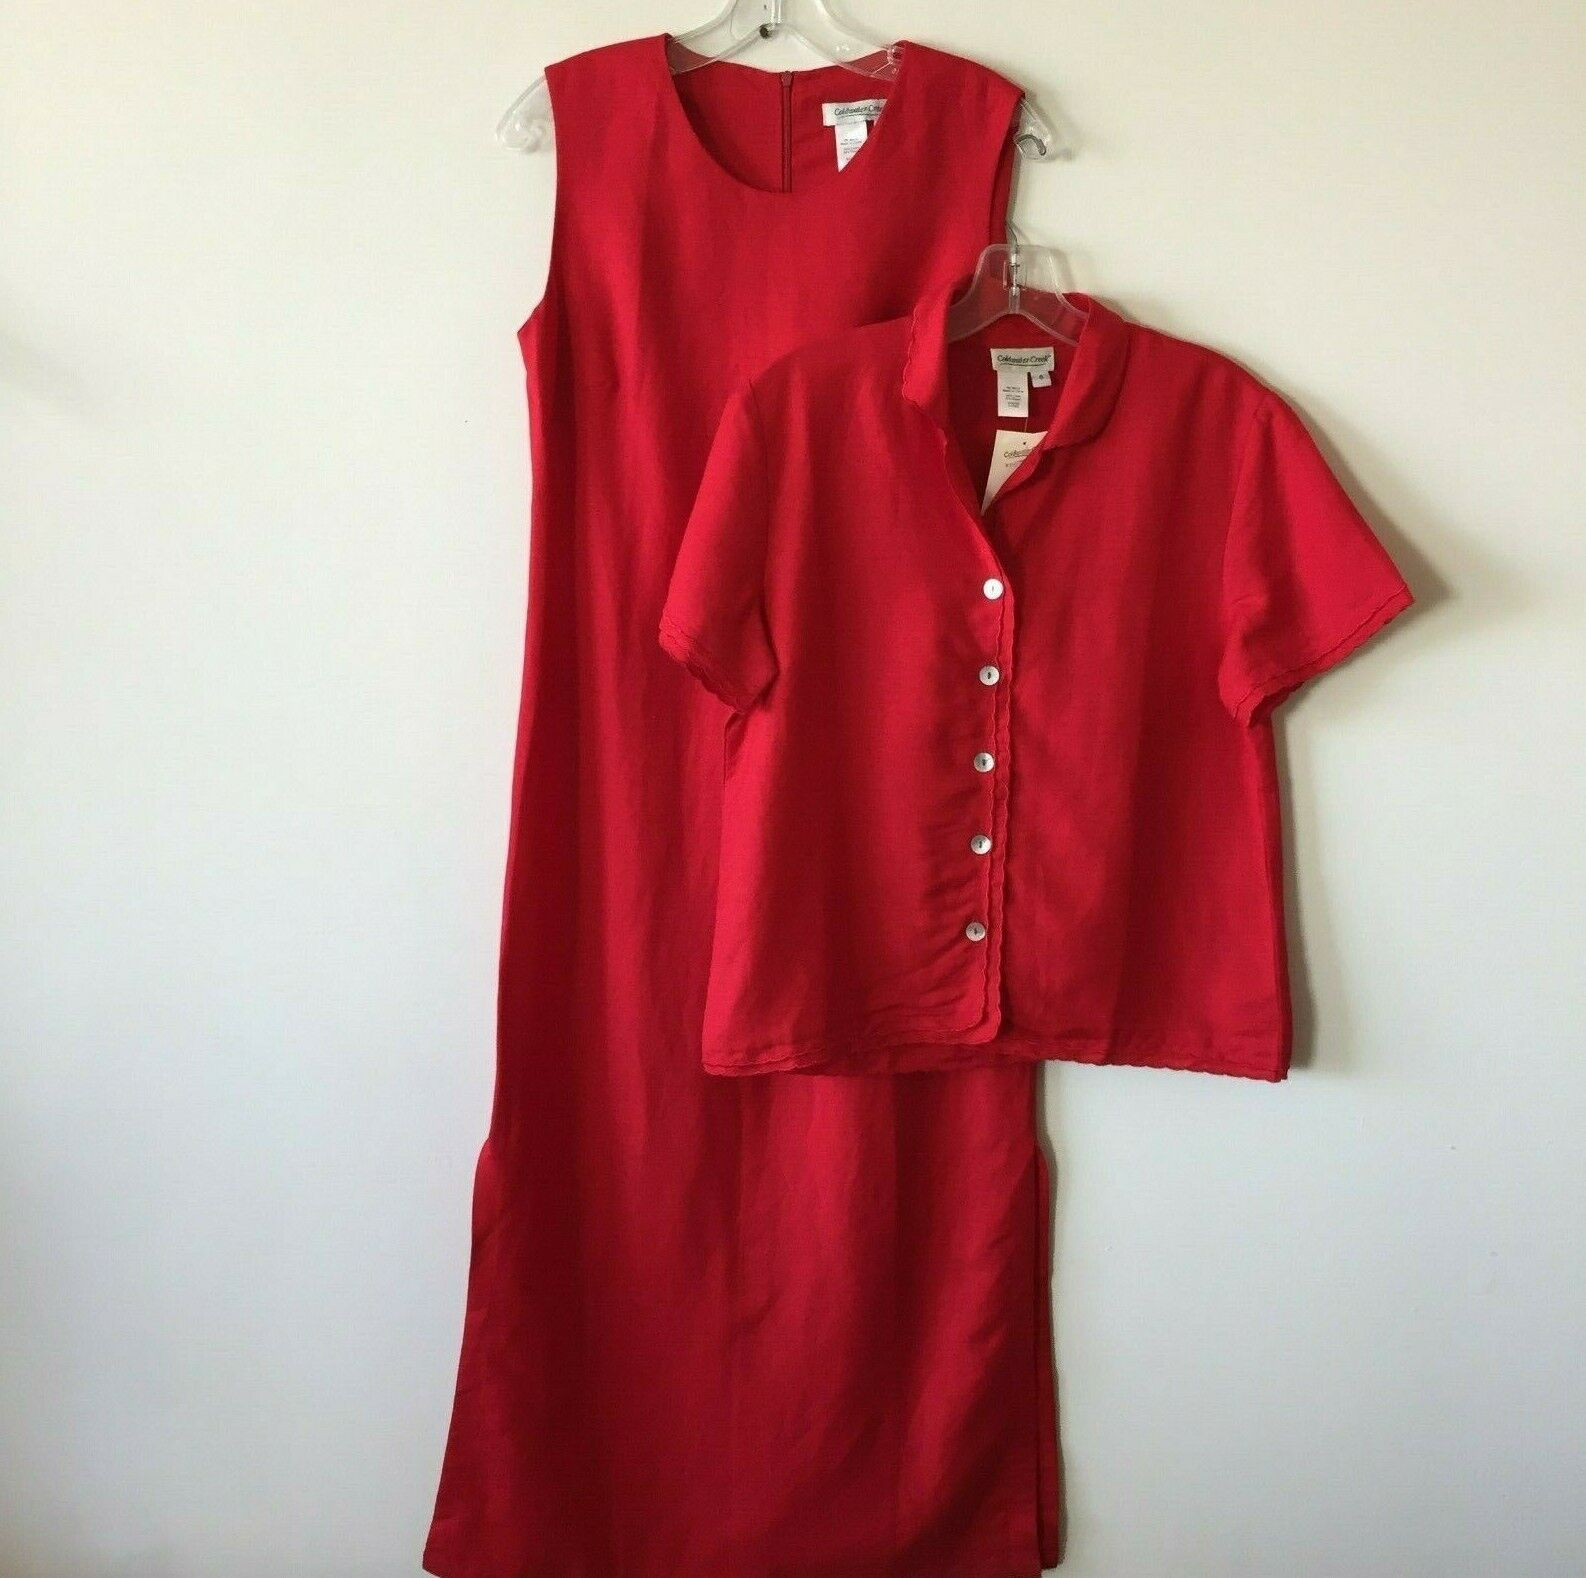 Coldwater Creek 2 Piece Maxi Dress and Short Sleeve Jacket Set rot 6 NWT